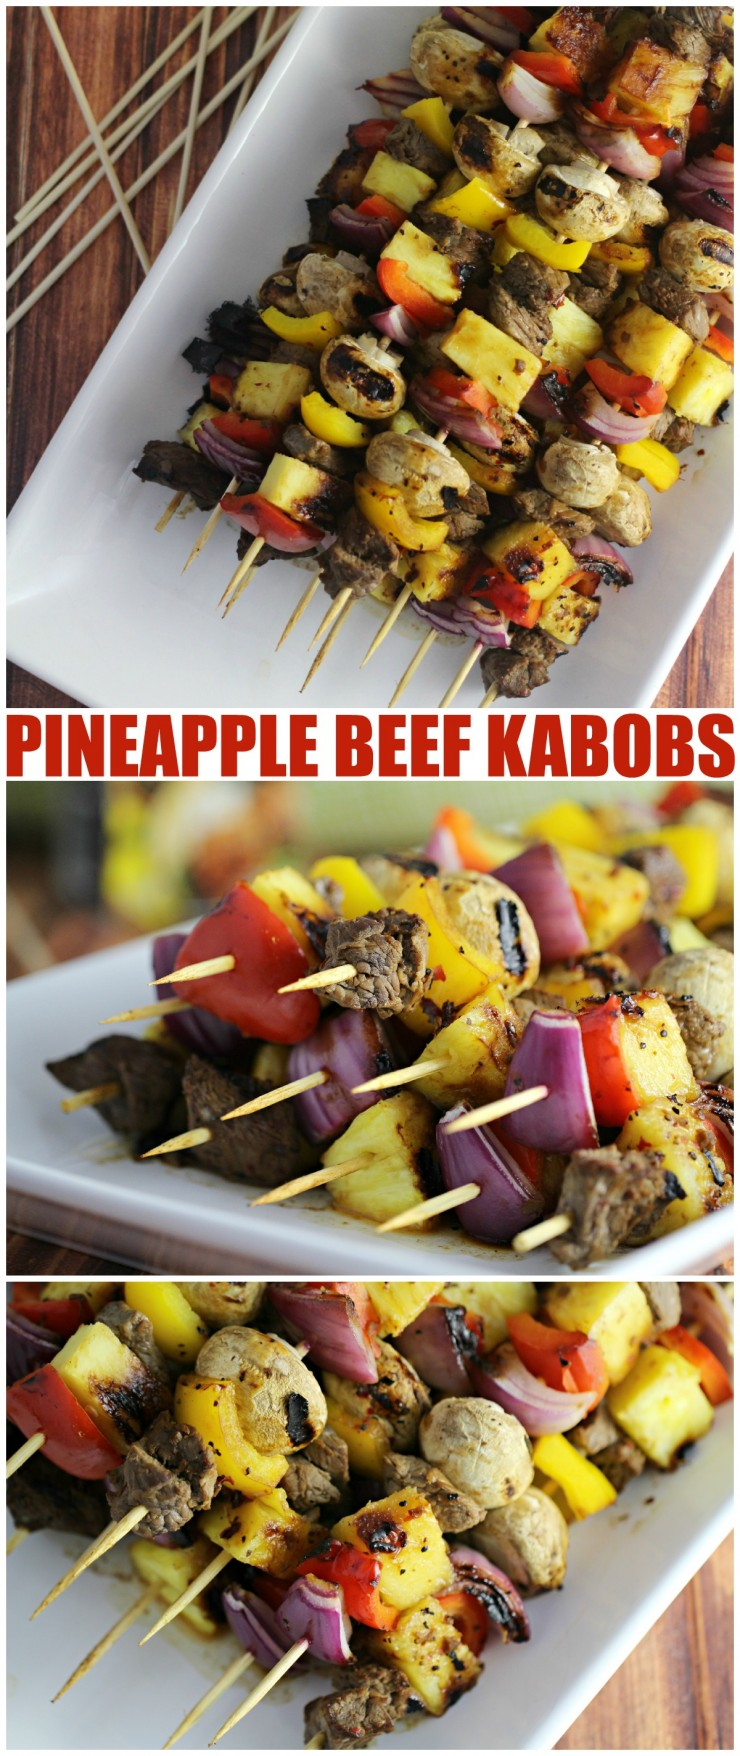 These Pineapple Tamarind Beef Kabobs are full of tropical flavours and deliciously grilled to perfection for a family dinner you will make again and again.